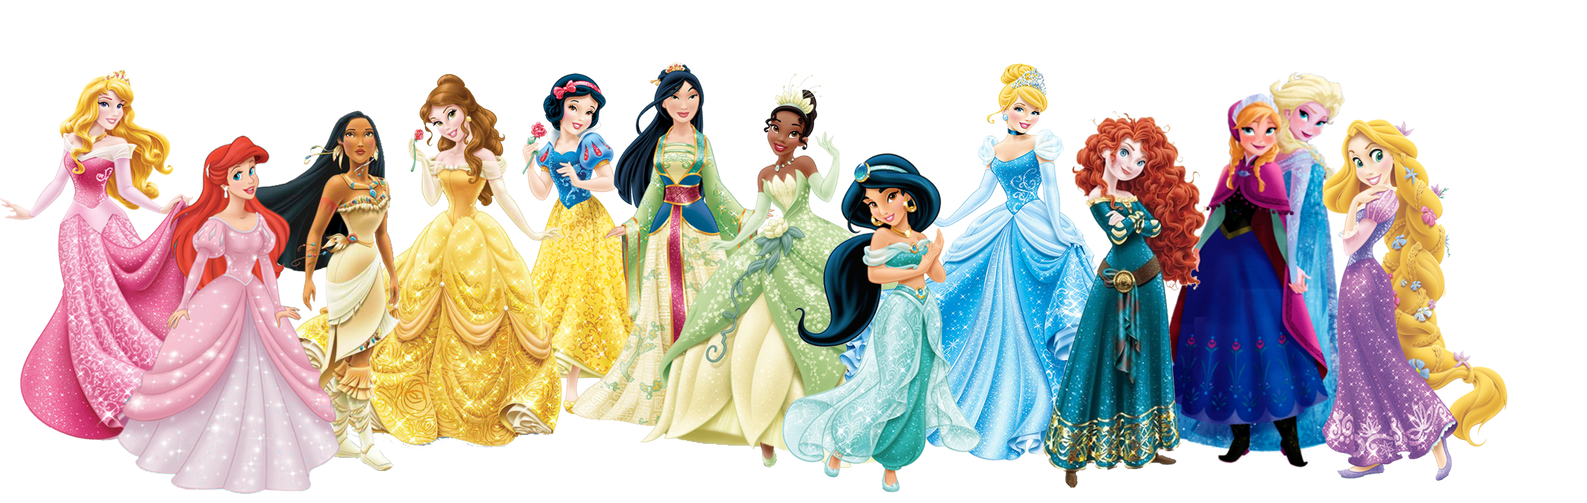 The Disney Princesses Were Younger Than I Thought | Awesomely Luvvie